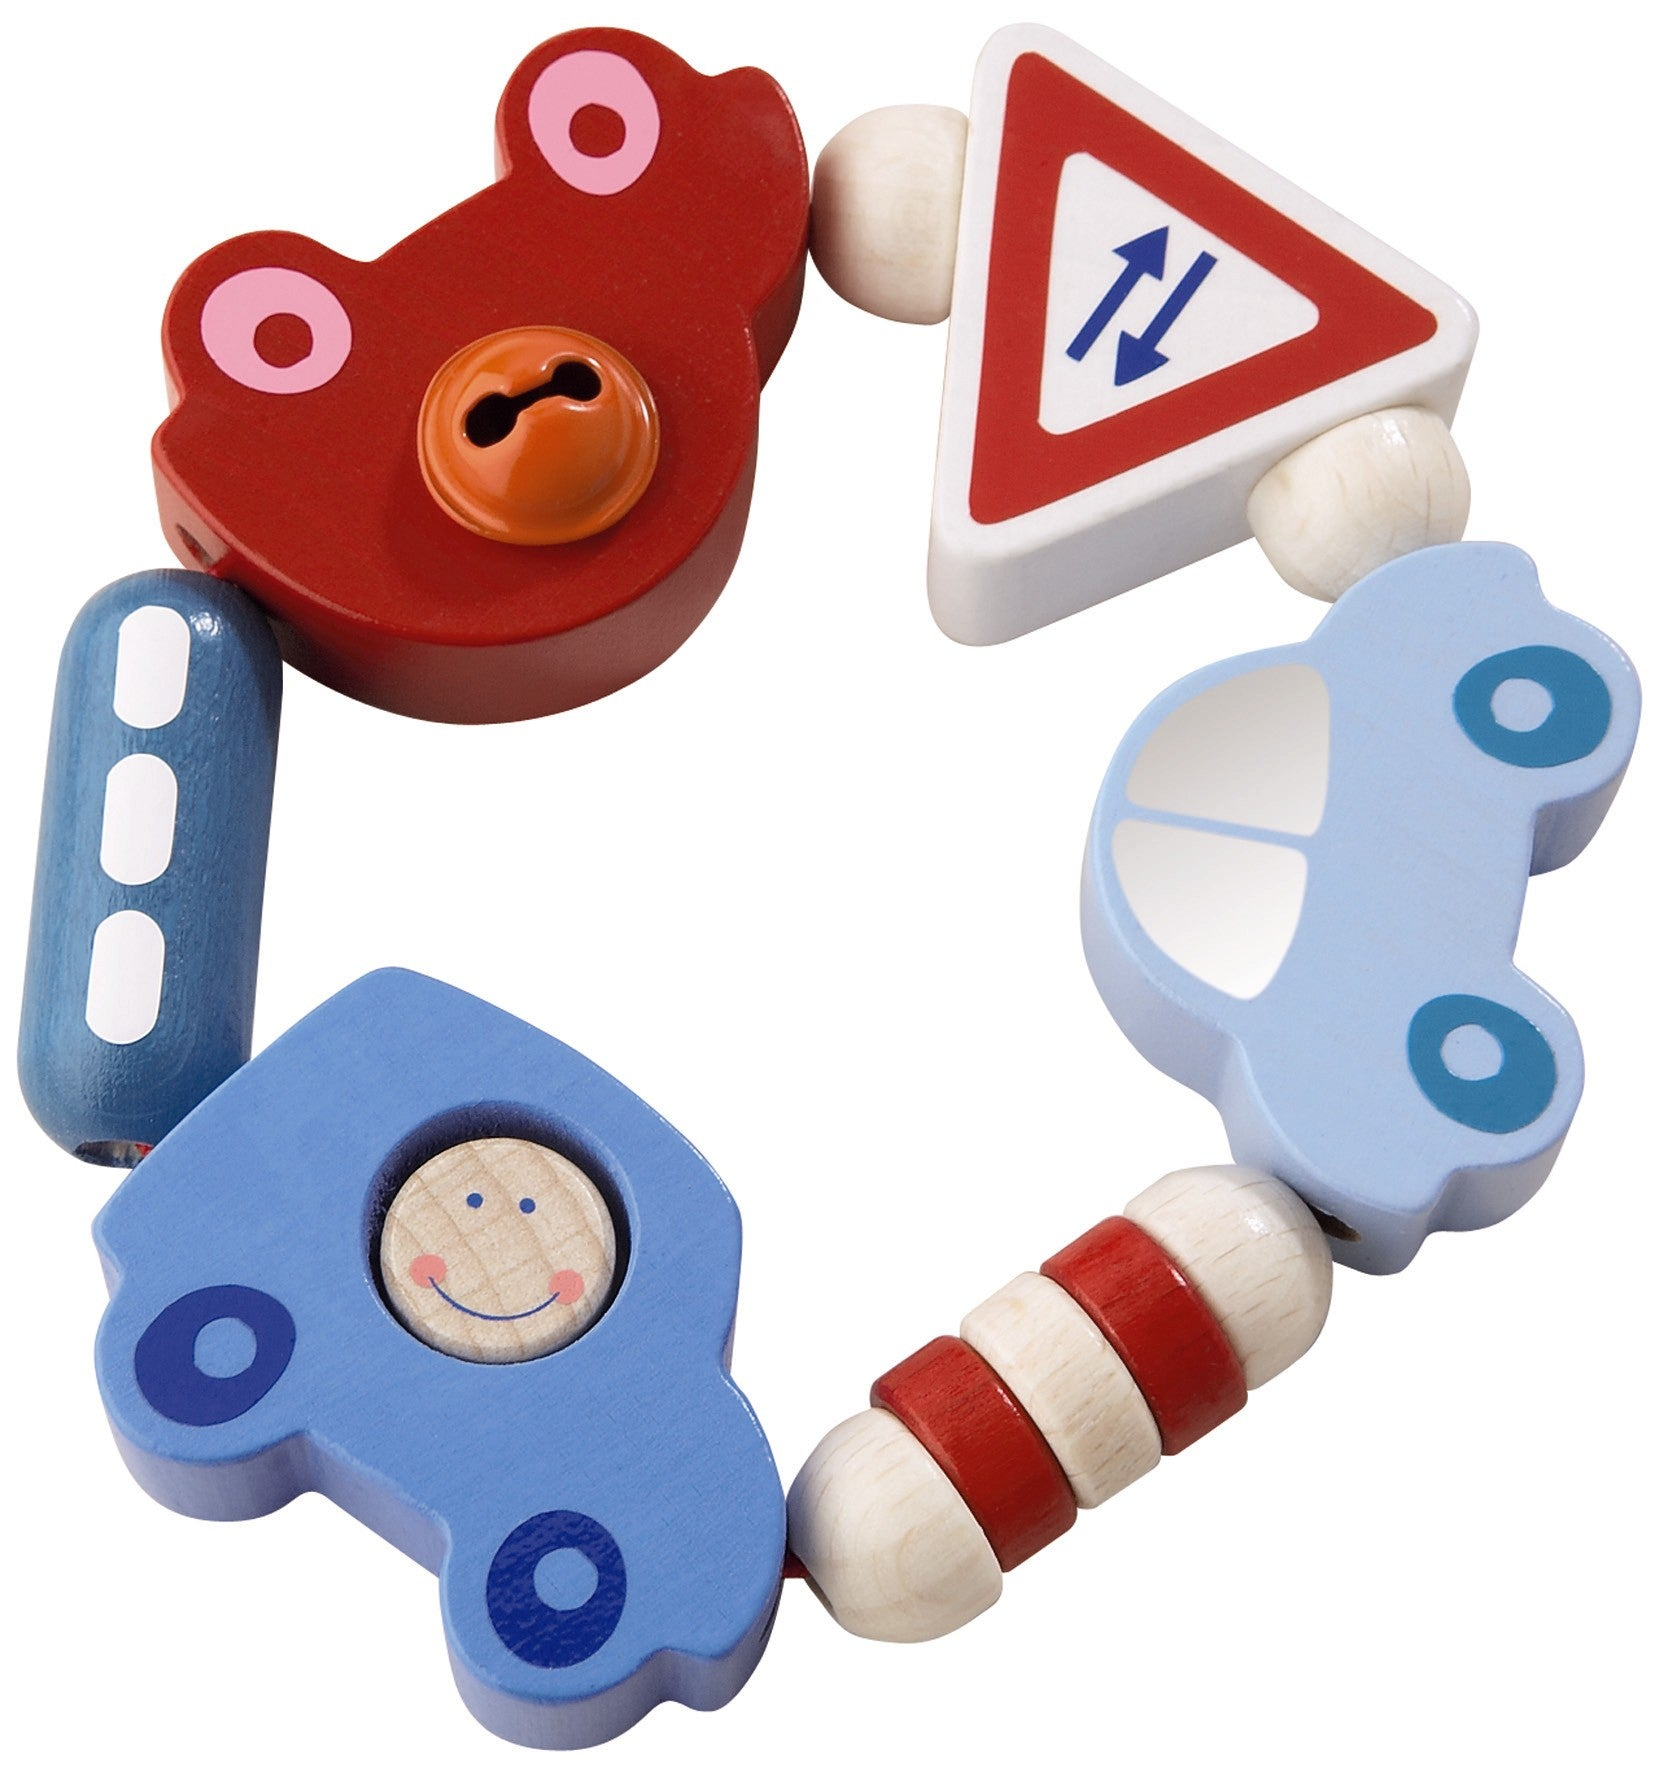 Haba Toot Toot Clutching Toy - WoodenToys.com